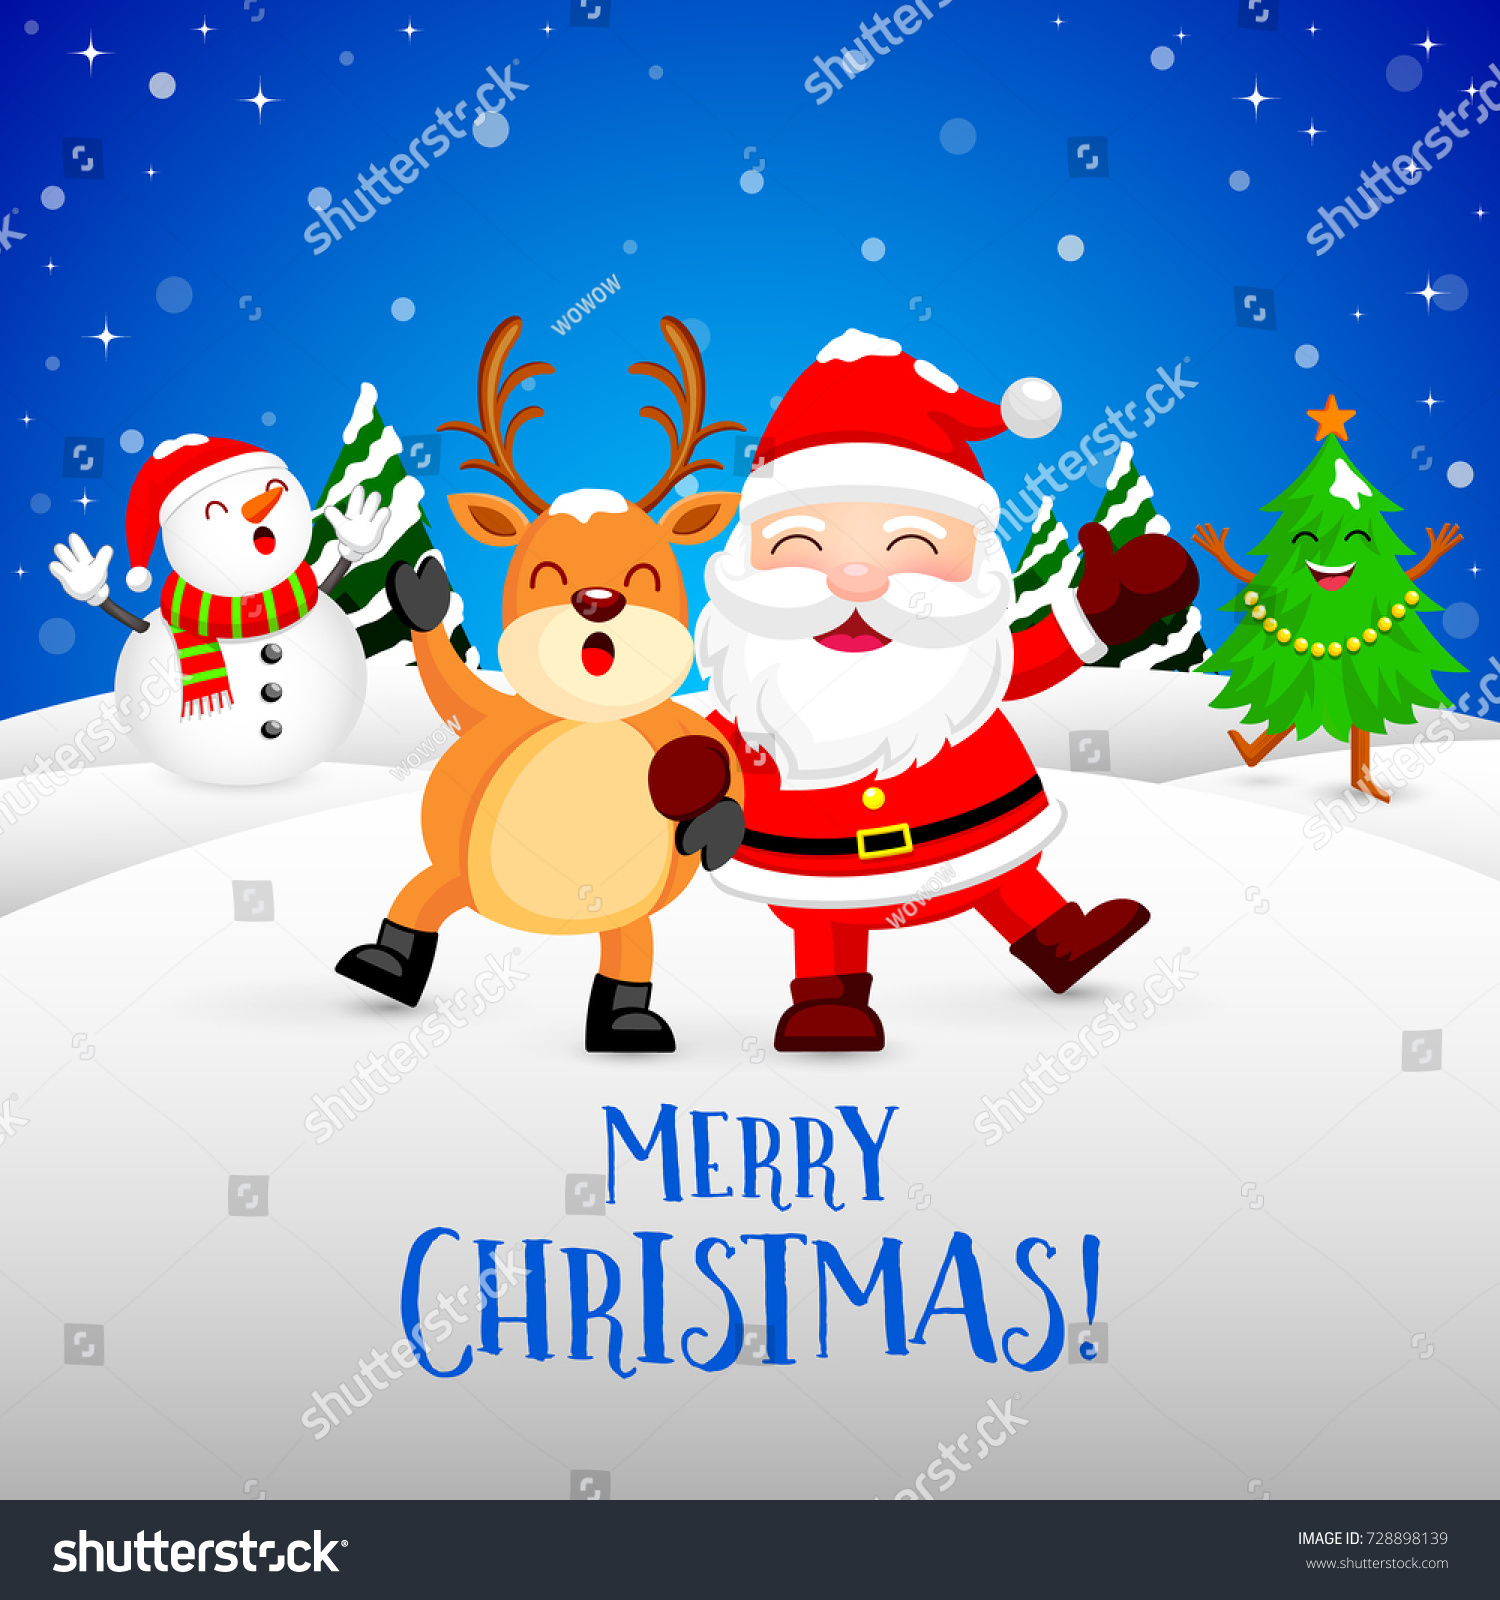 funny christmas characters design on snow santa claus snowman xmas tree and reindeer - Funny Merry Christmas